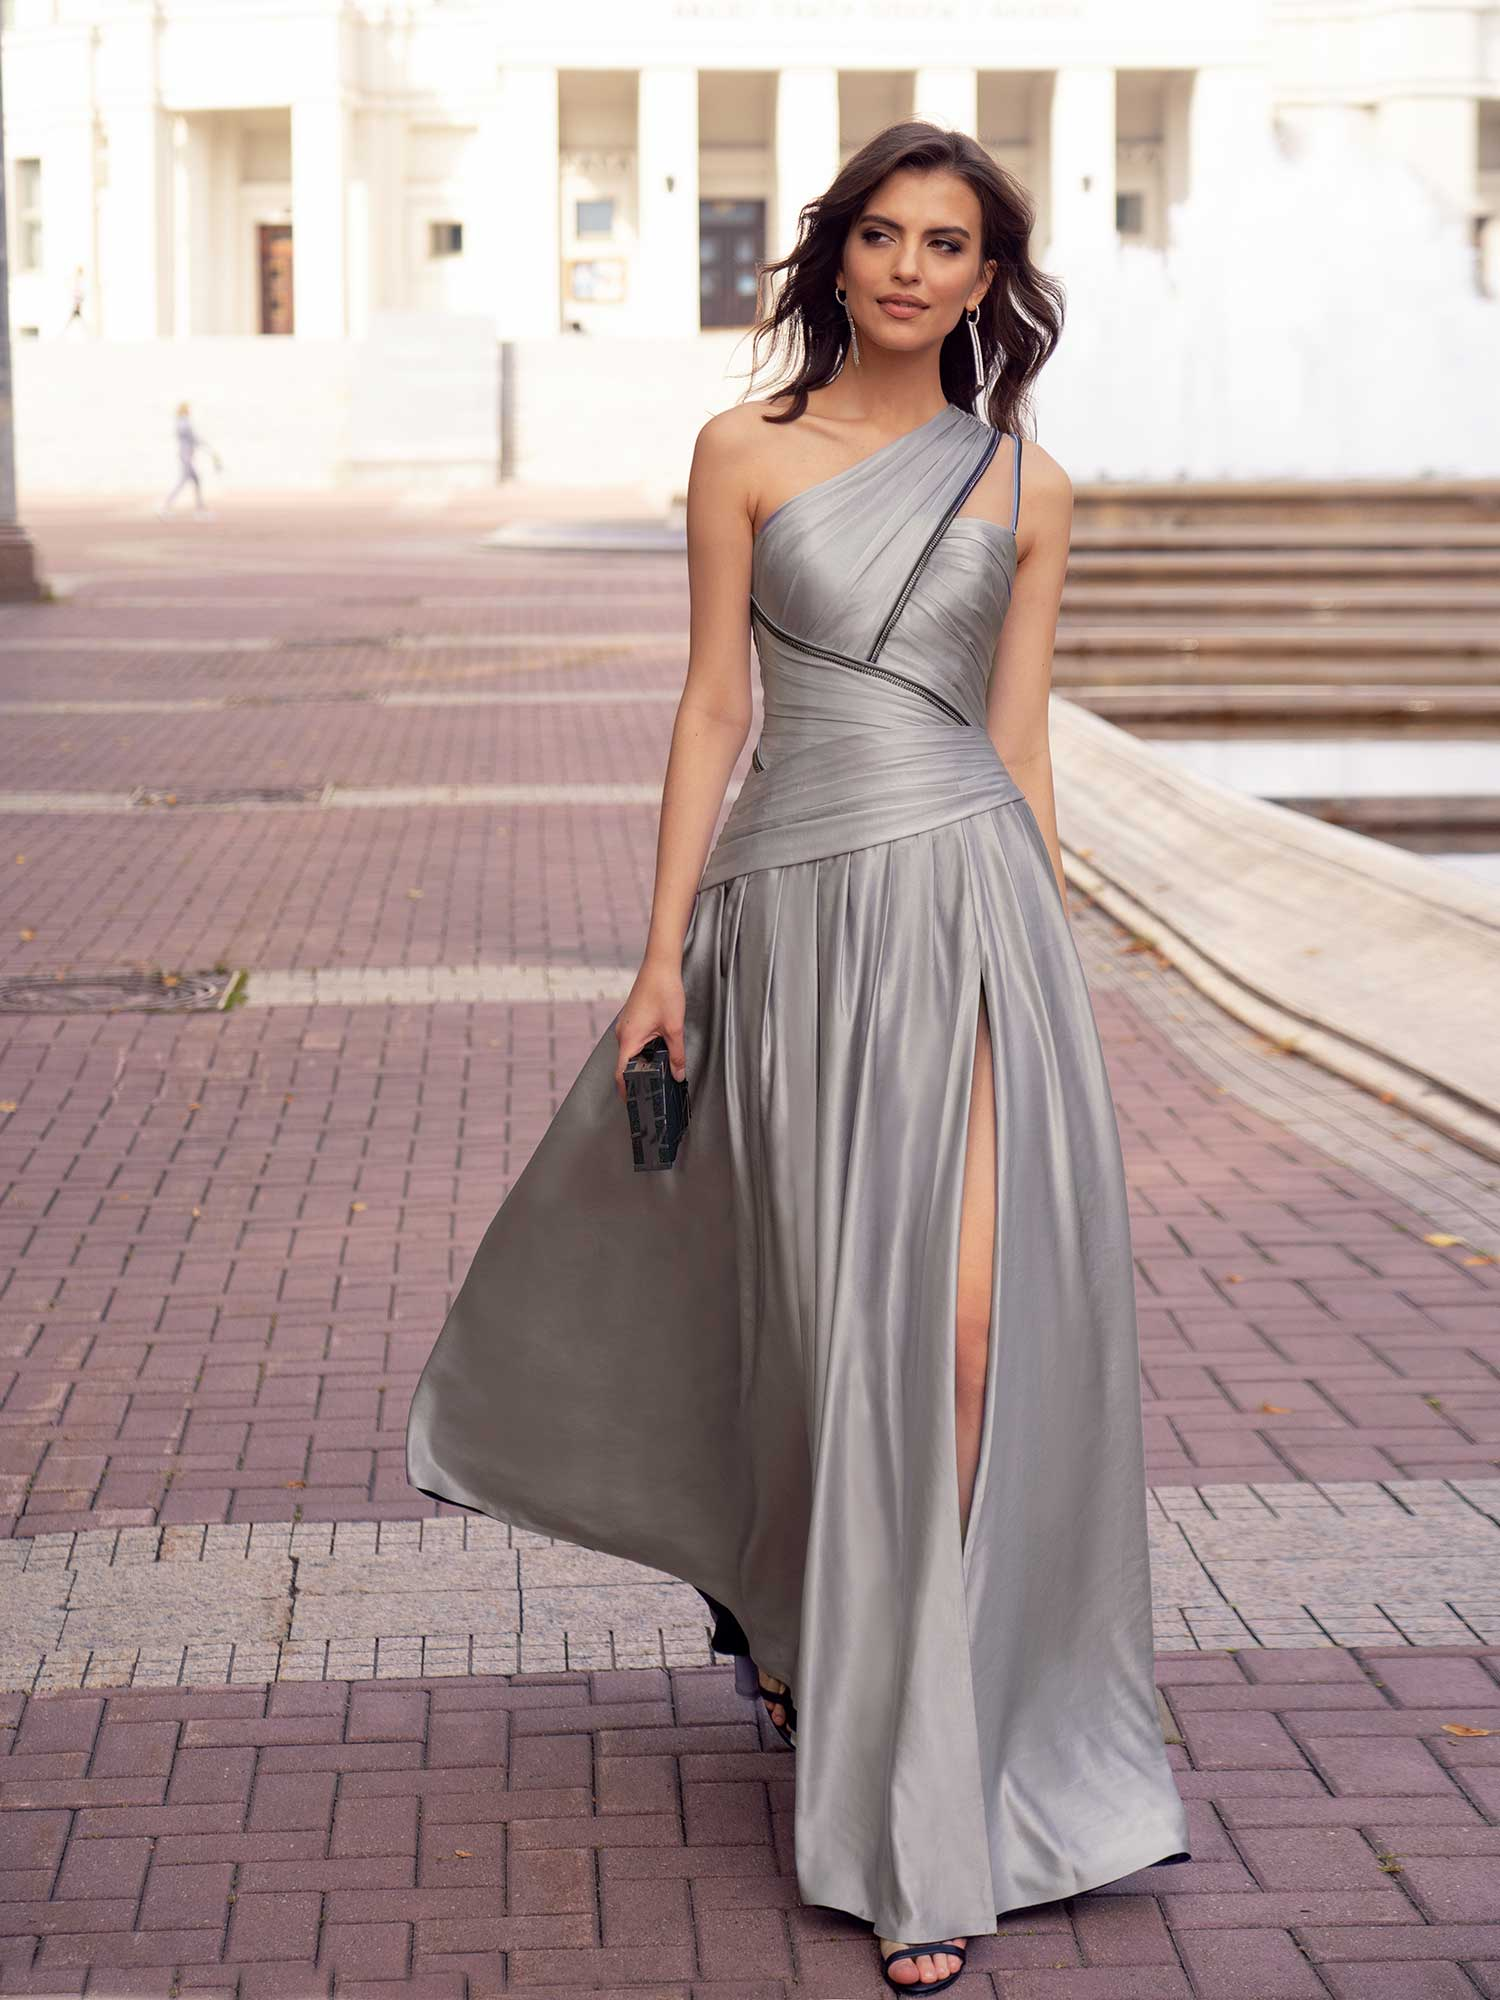 Style #572, luxury formal dress with asymmetrical designs and slit on the leg, available in grey, terracotta